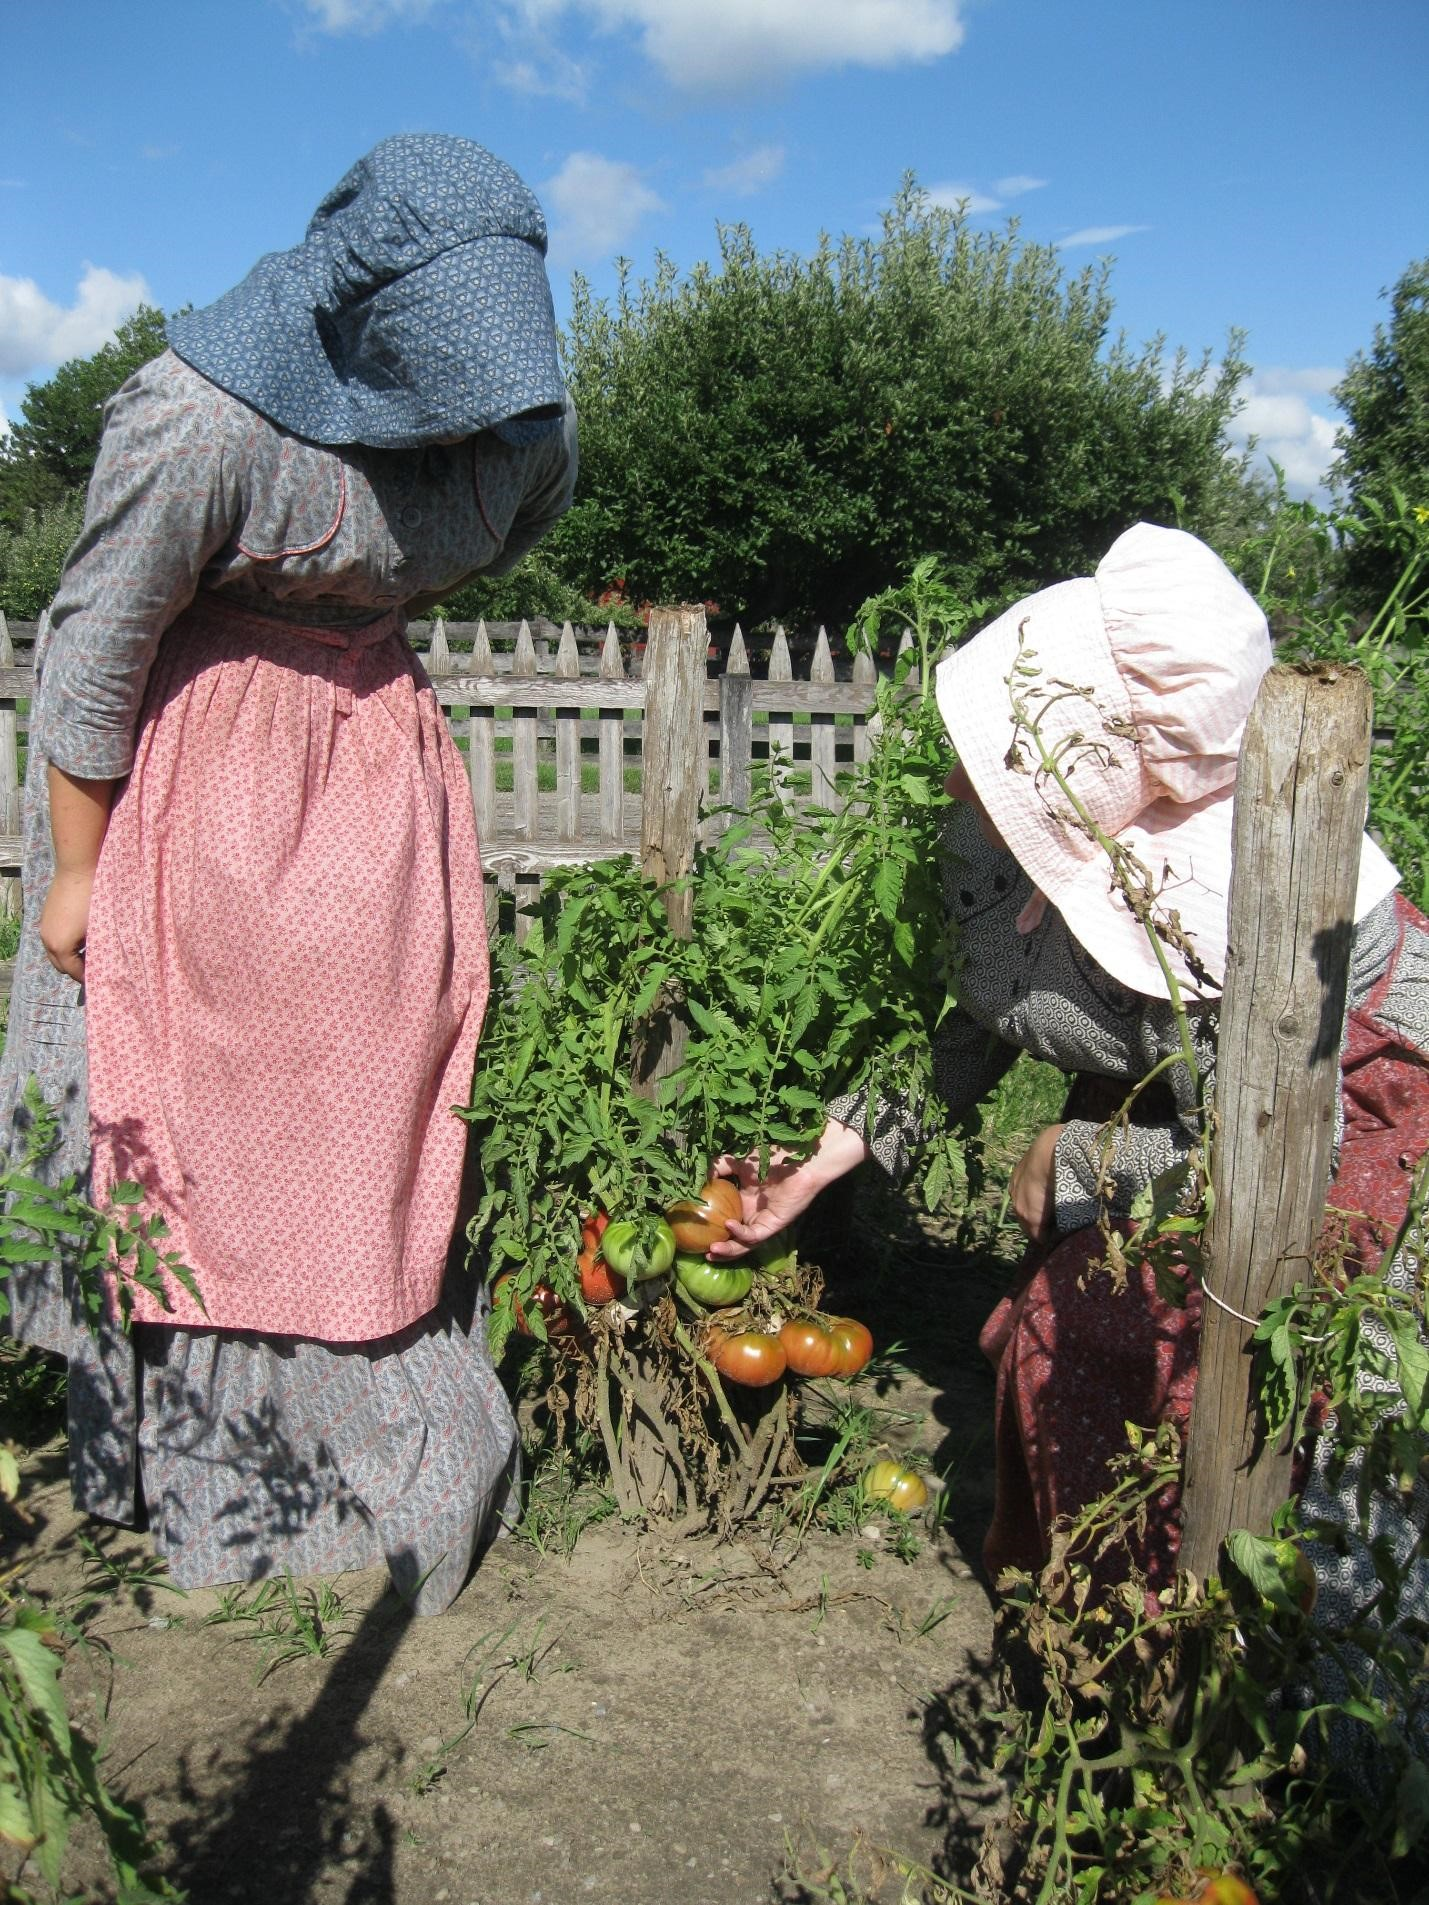 Two women in period dresses and bonnets examine a tomato plant in a garden with unpainted picket fence in background